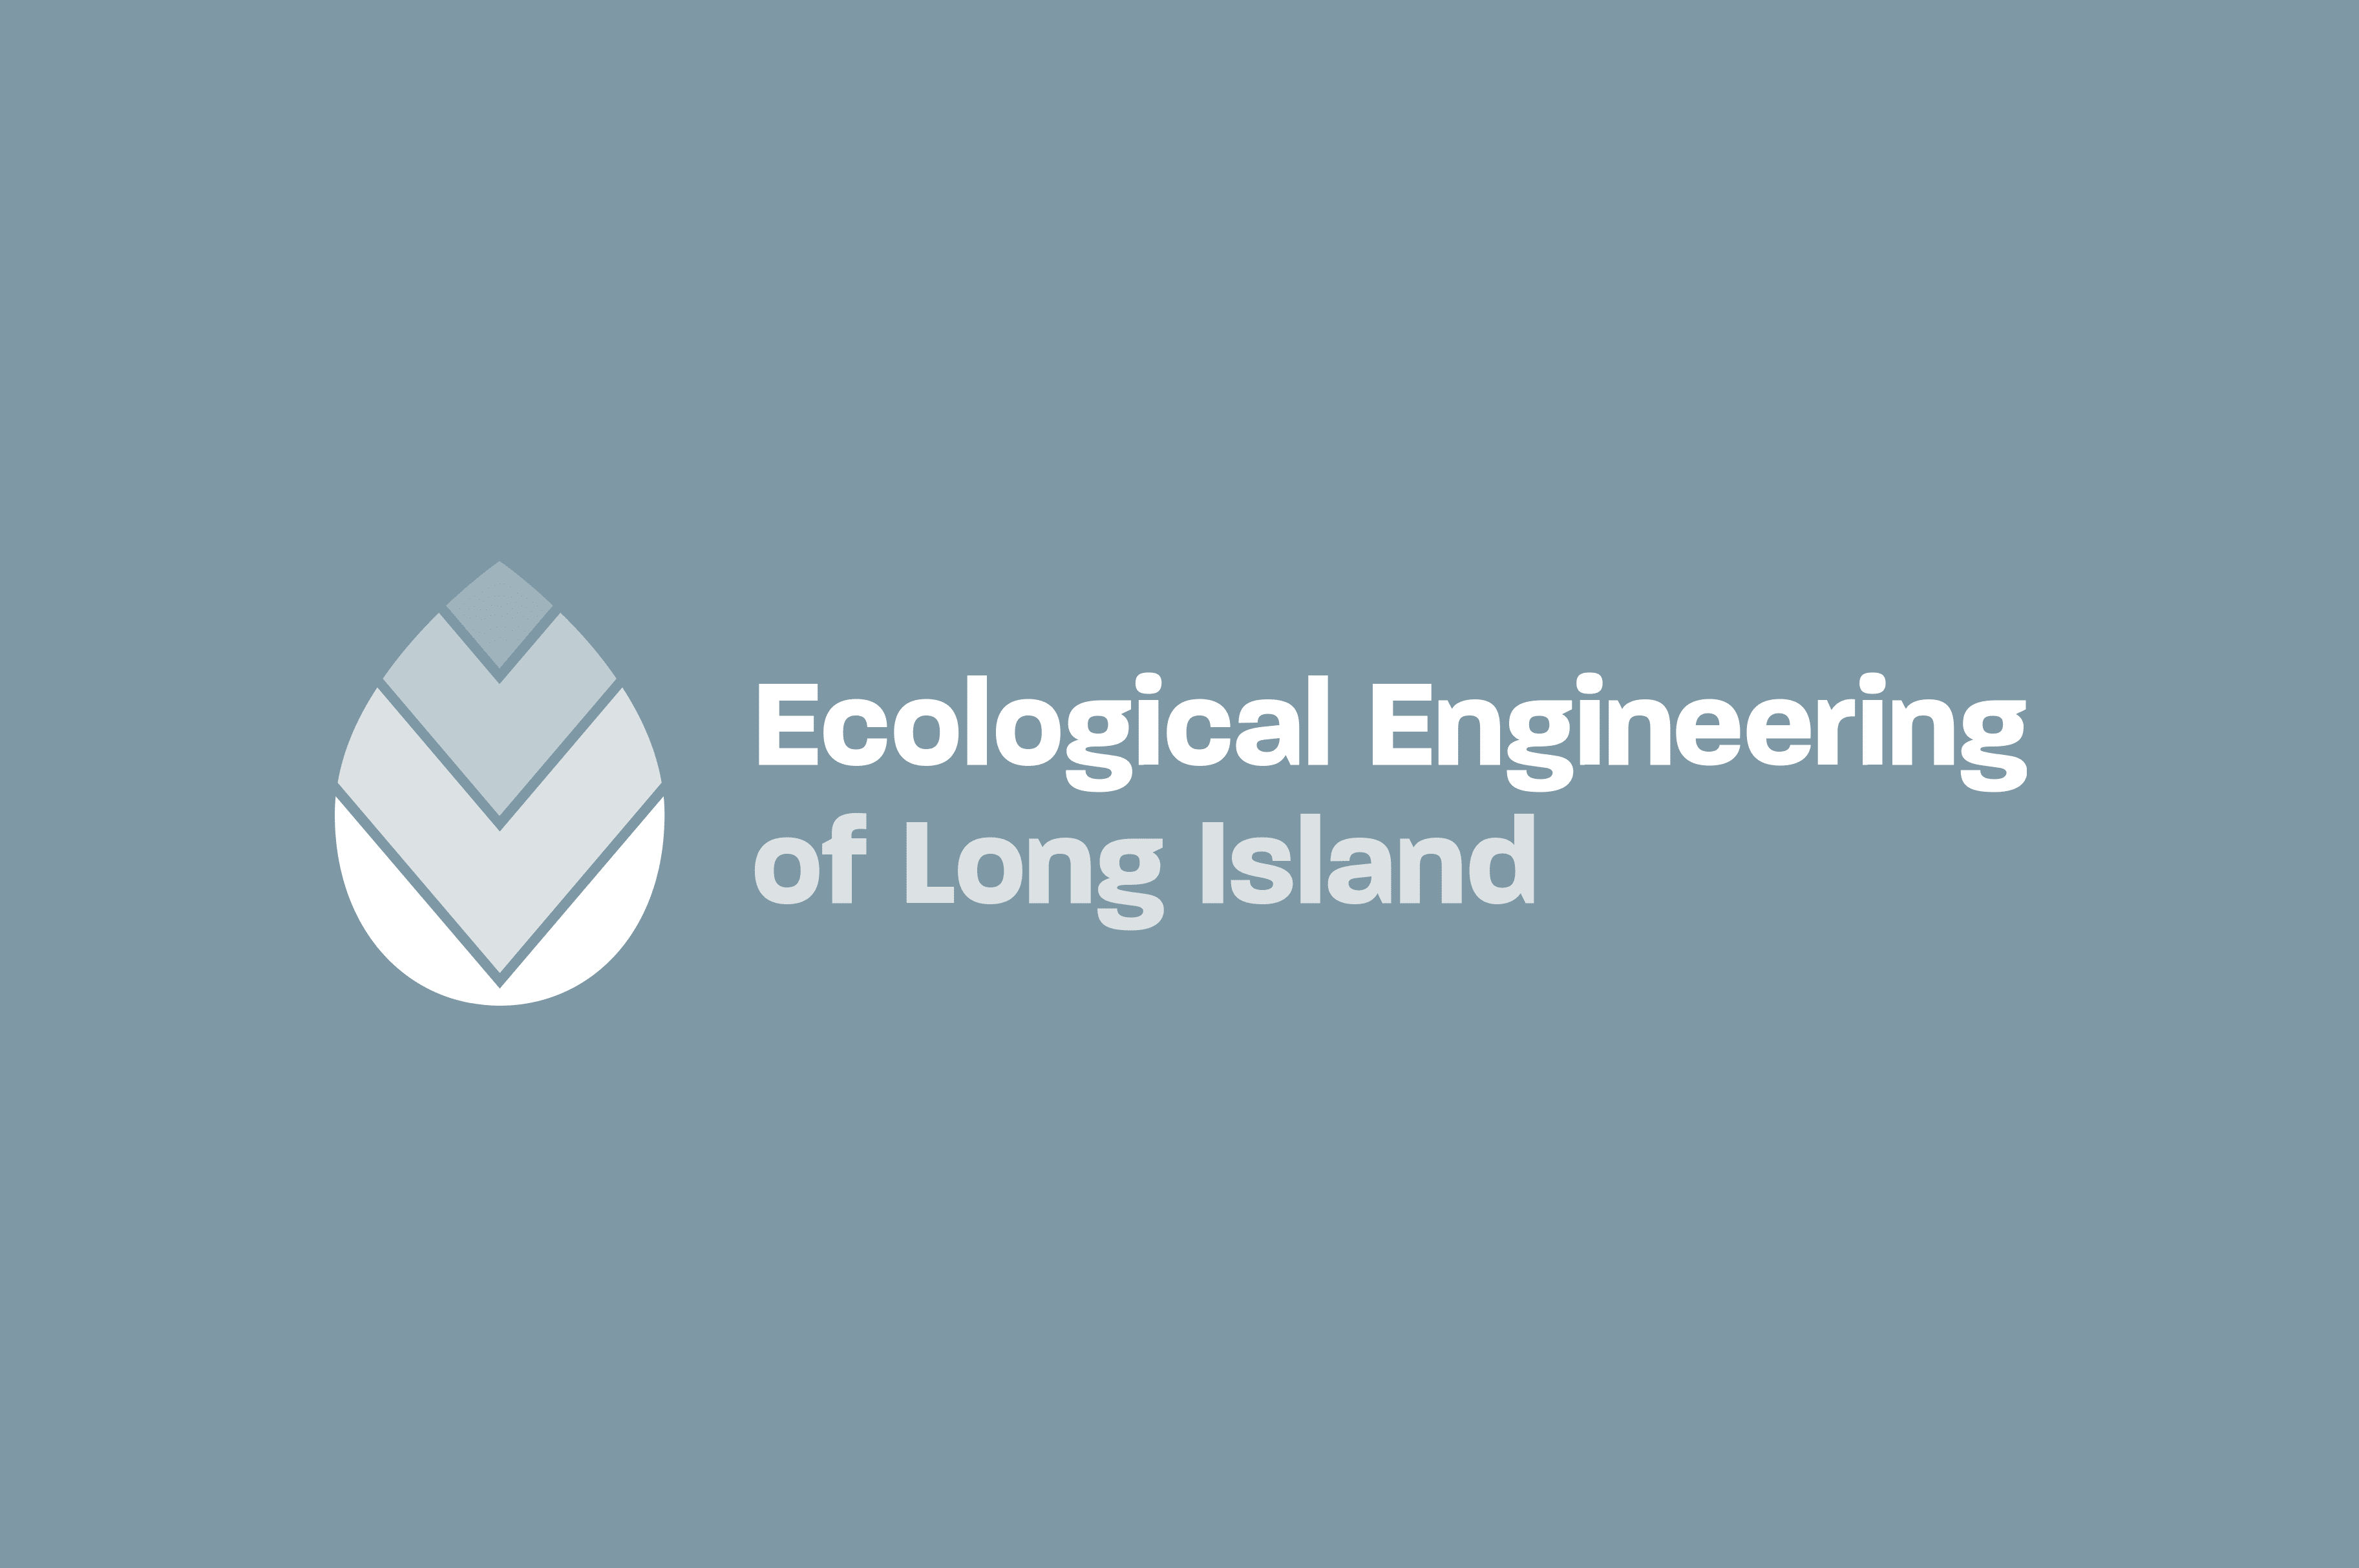 Ecological Engineering of Long Island design